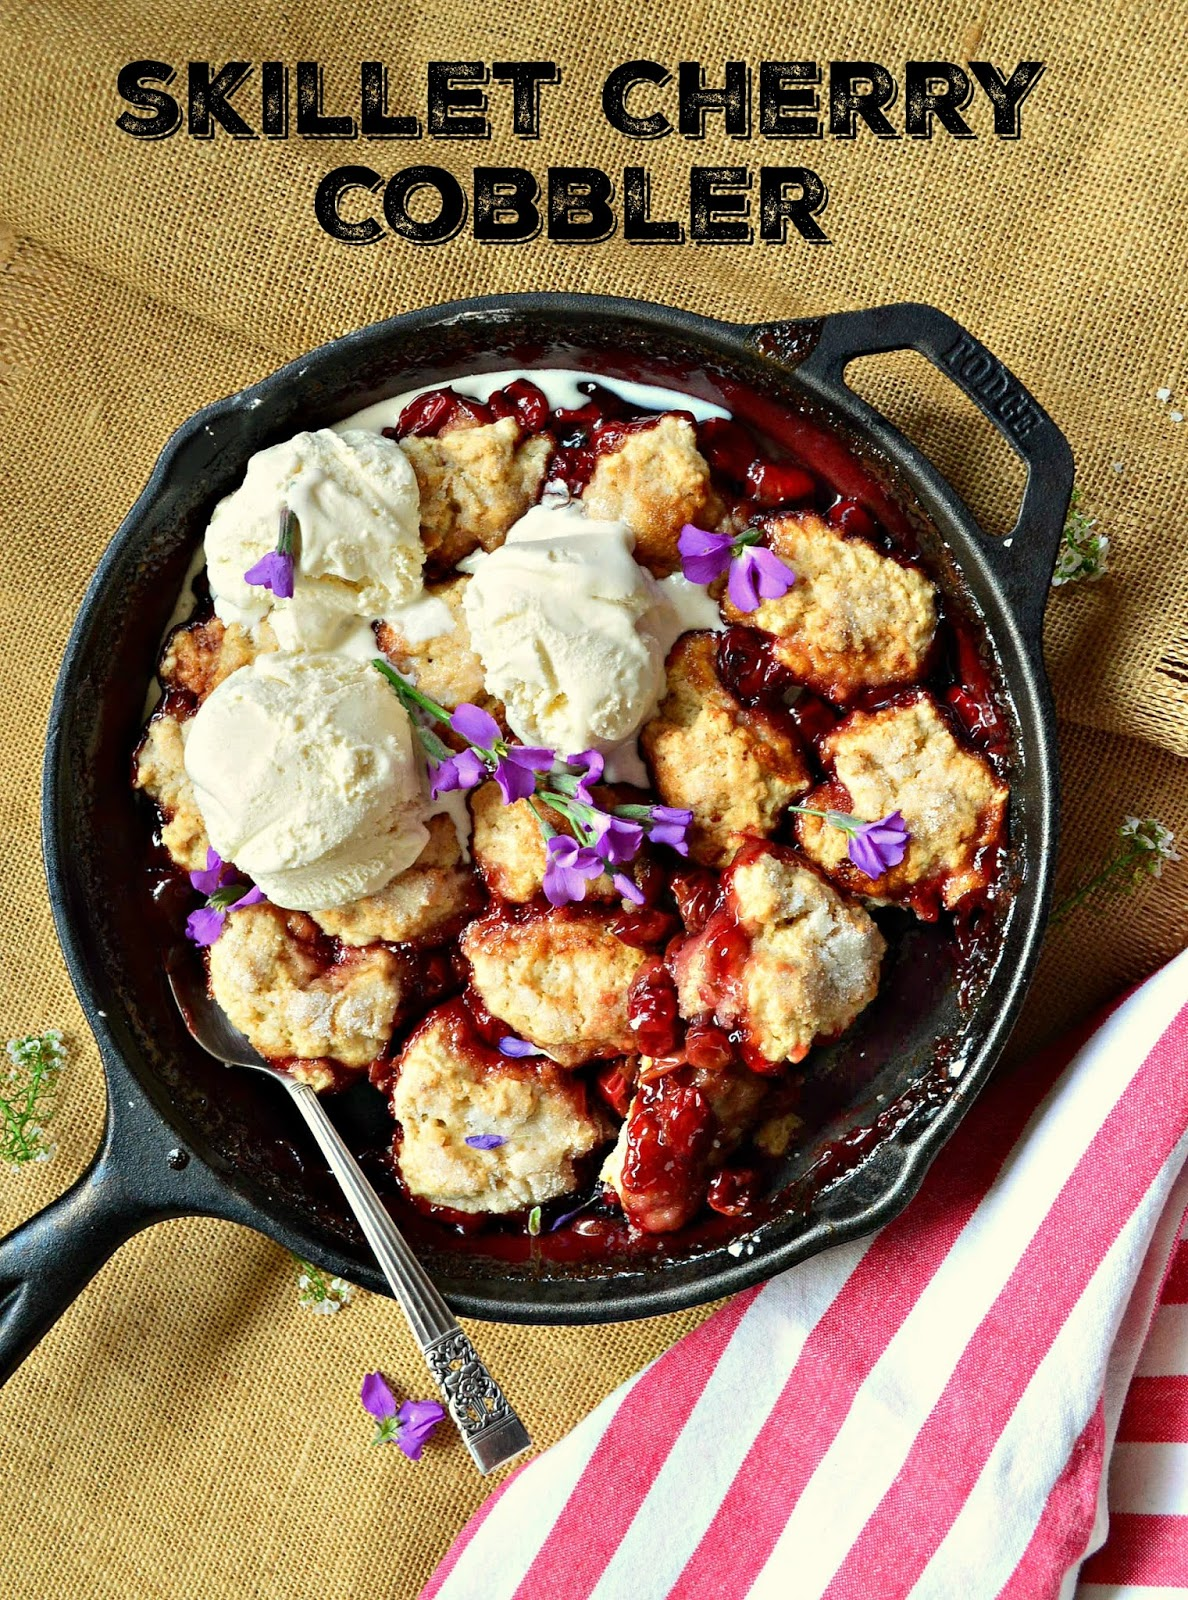 Old Fashioned Skillet Cherry Cobbler is made for cherry lovers. Who doesn't love cherries topped with warm biscuits? And perhaps some ice cream on top? www.thisishowicook.com #cobbler #cherryrecipes #cherries #skilletdesserts